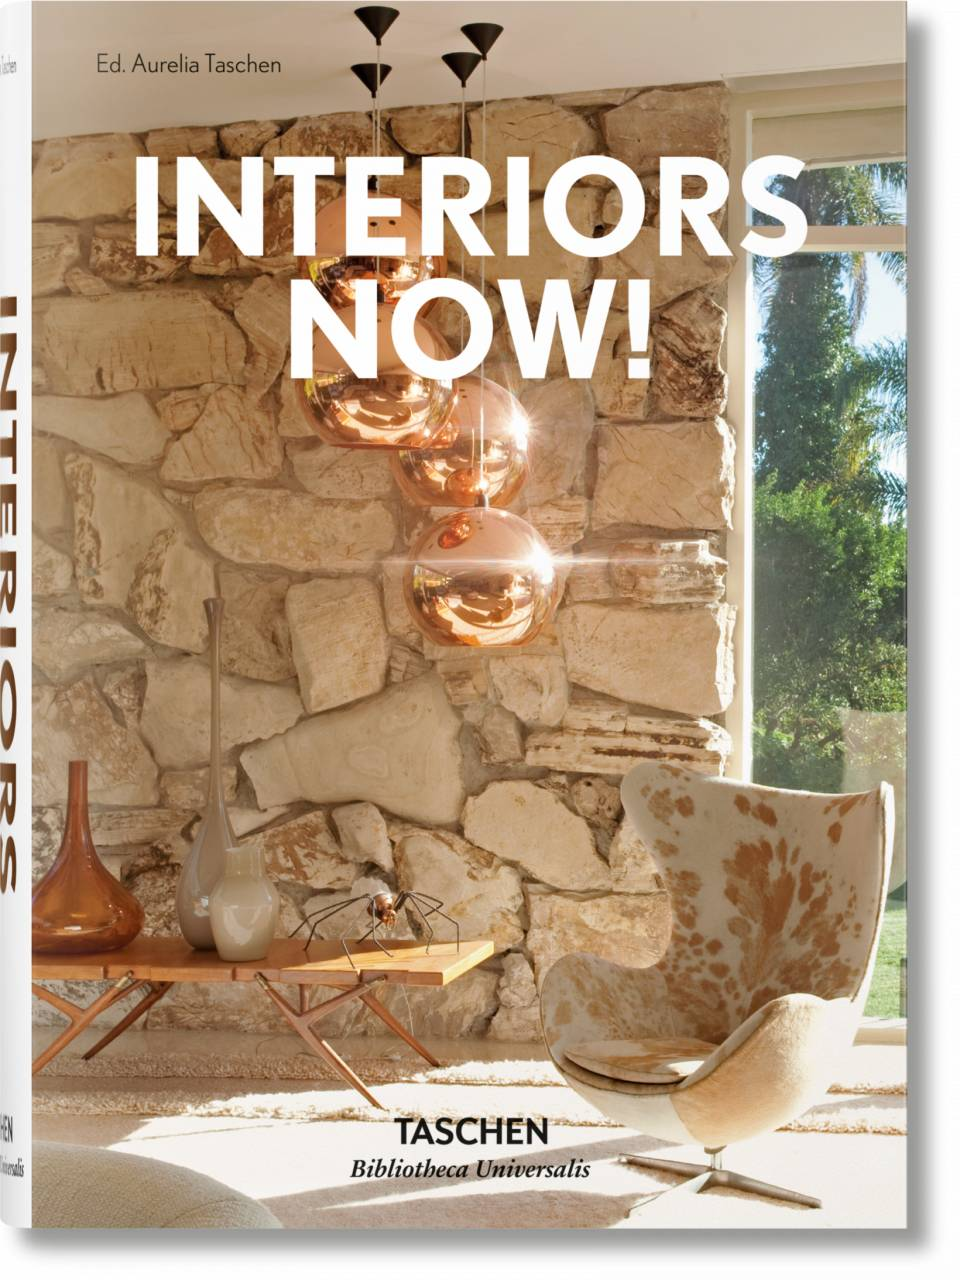 Interiors Now! - image 1